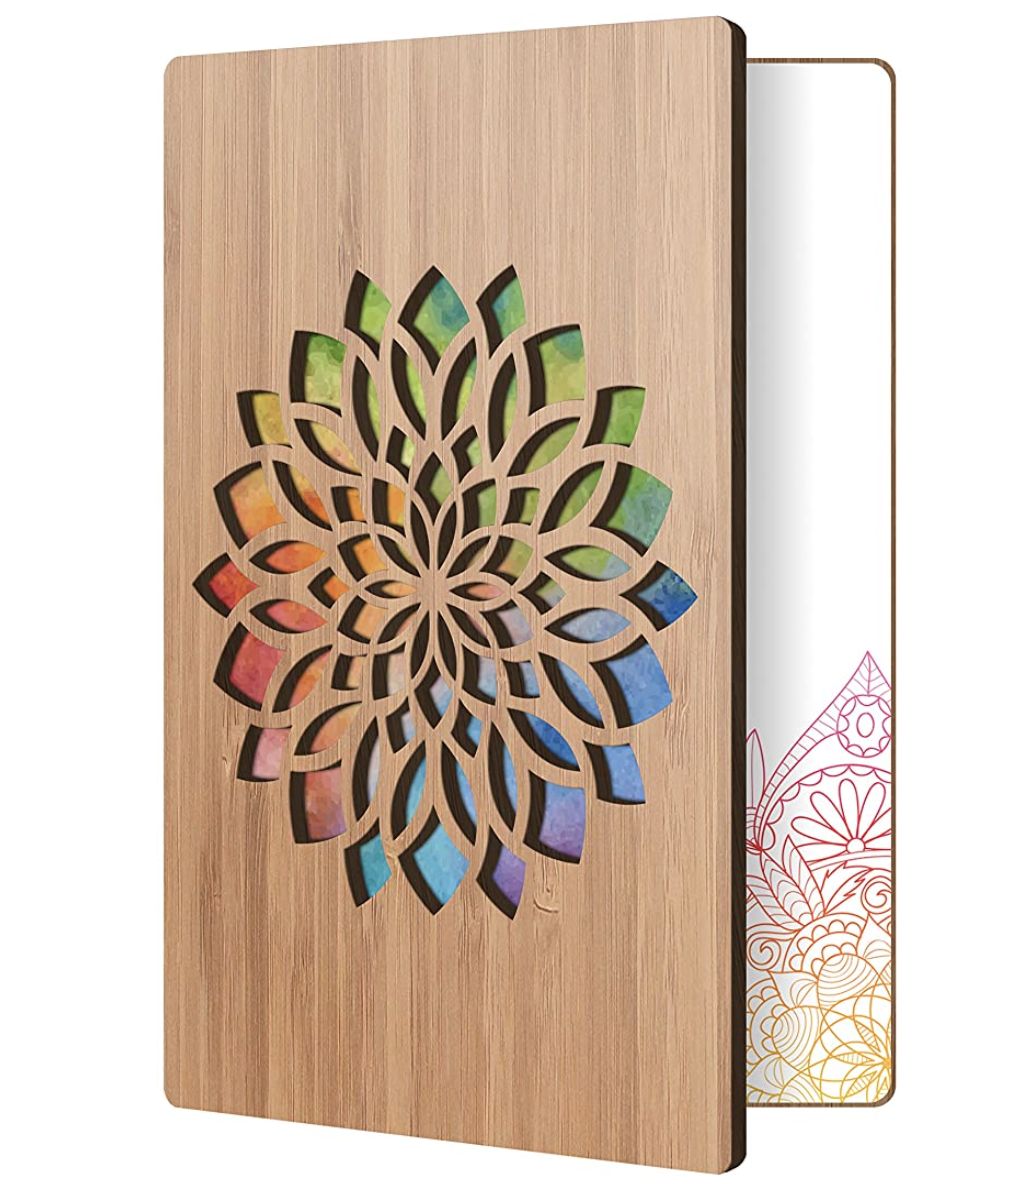 Best gifts for teachers – Handmade Flower Card With Real Bamboo Wood